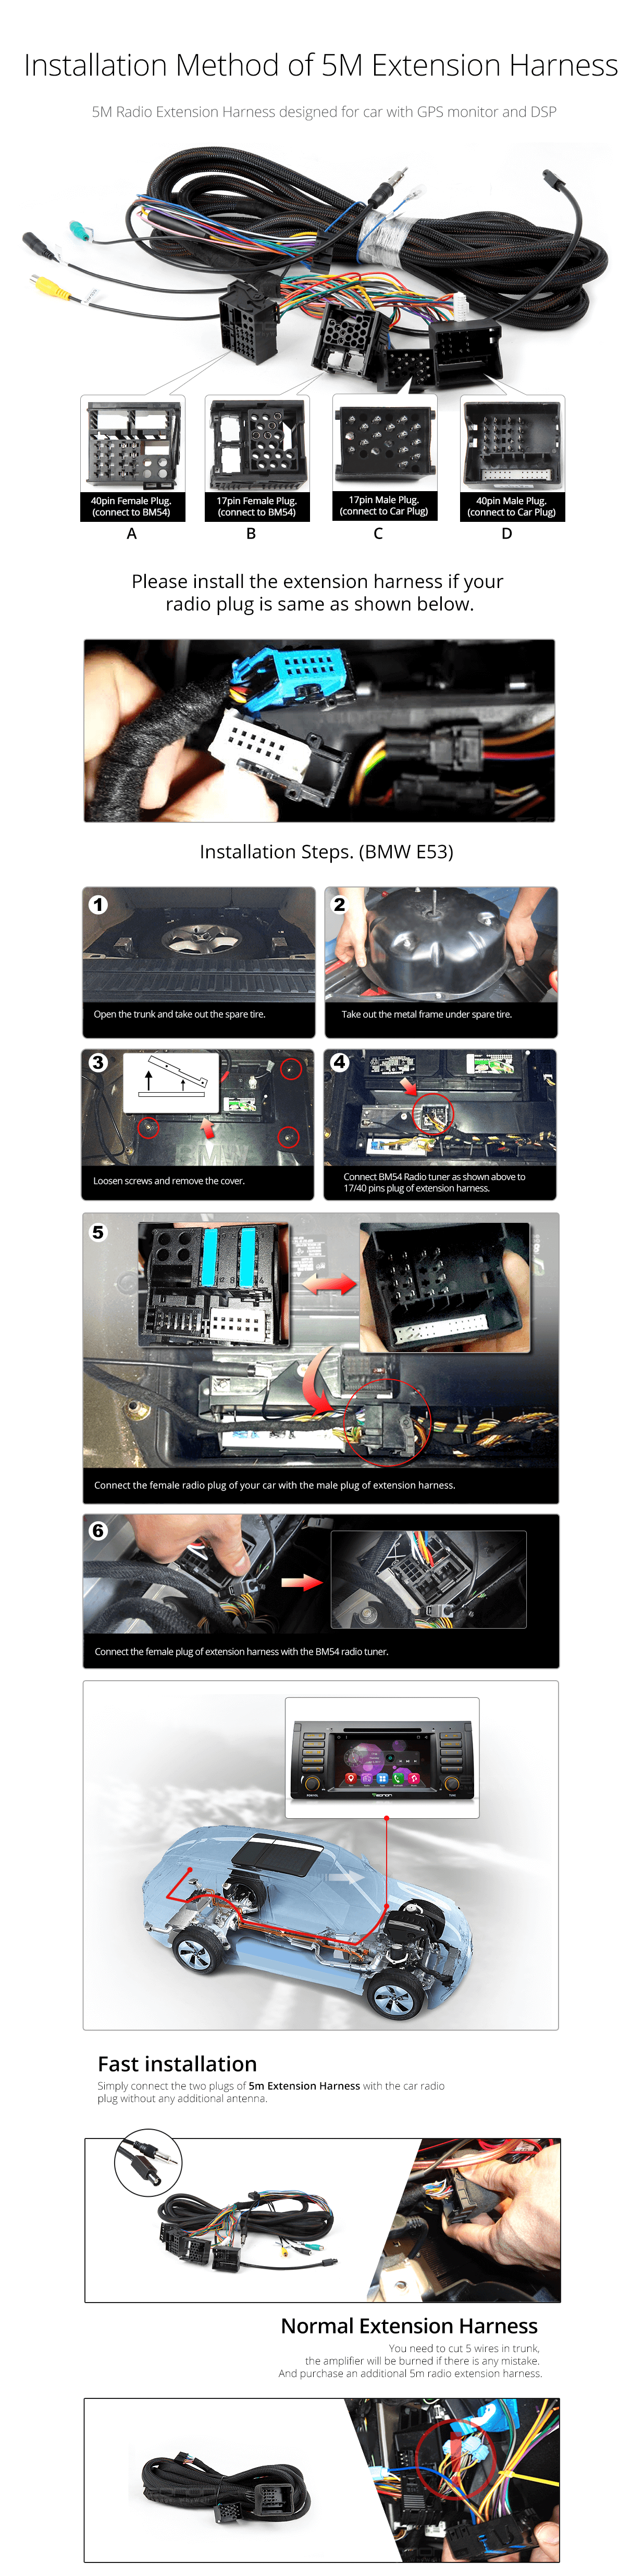 GA7166 last 1 ga7166 eonon car dvd eonon car stereo eonon car radio how to wire a car stereo without a harness at mifinder.co